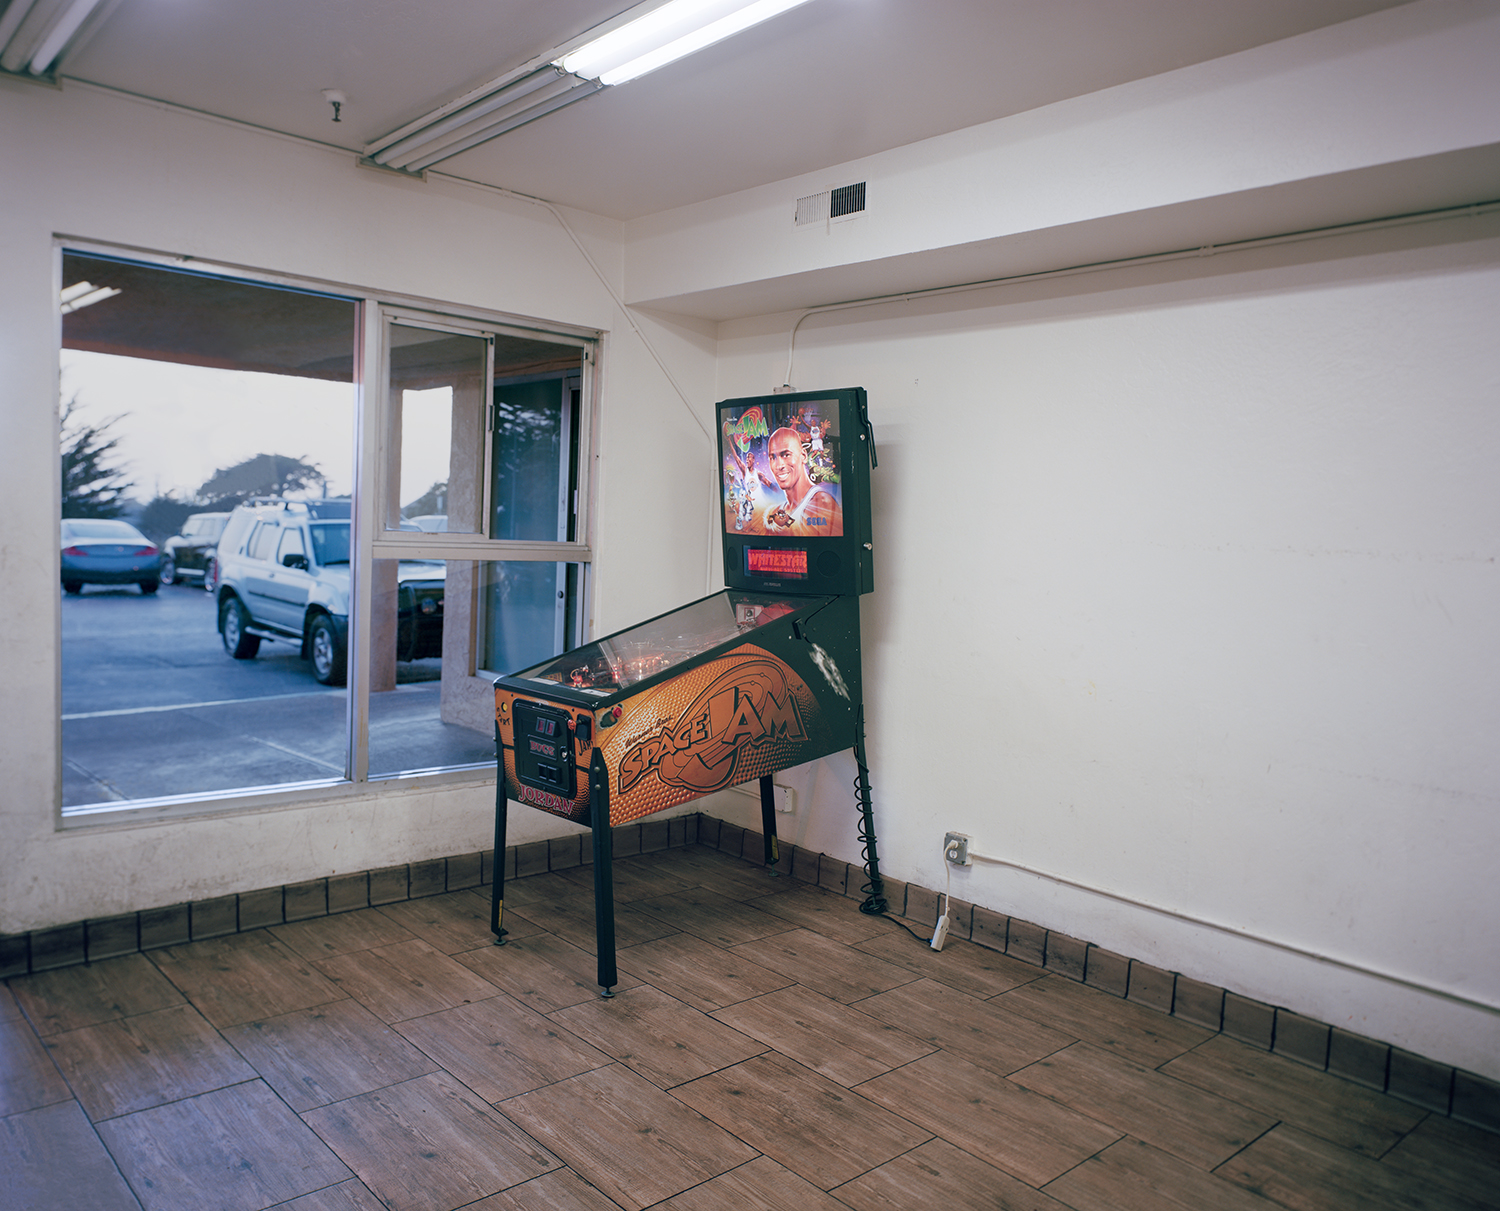 Space Jam Pinball Machine, 2015